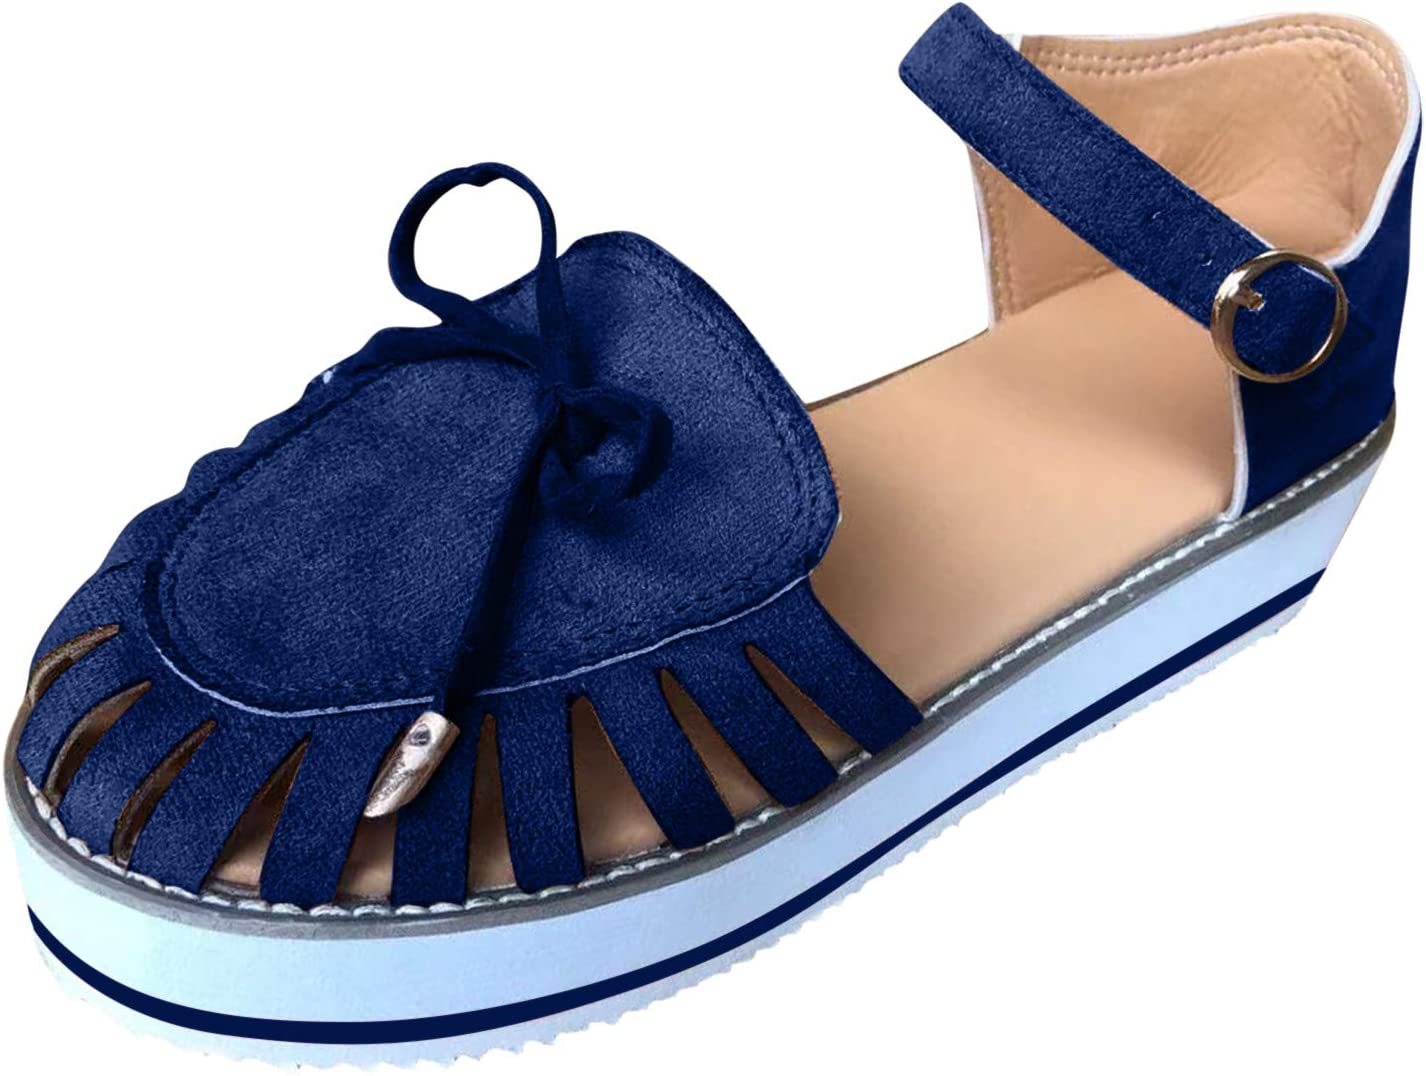 PLENTOP Womens Espadrille Platform Elastic Max 61% OFF Strappy We Closed 2021 autumn and winter new Toe